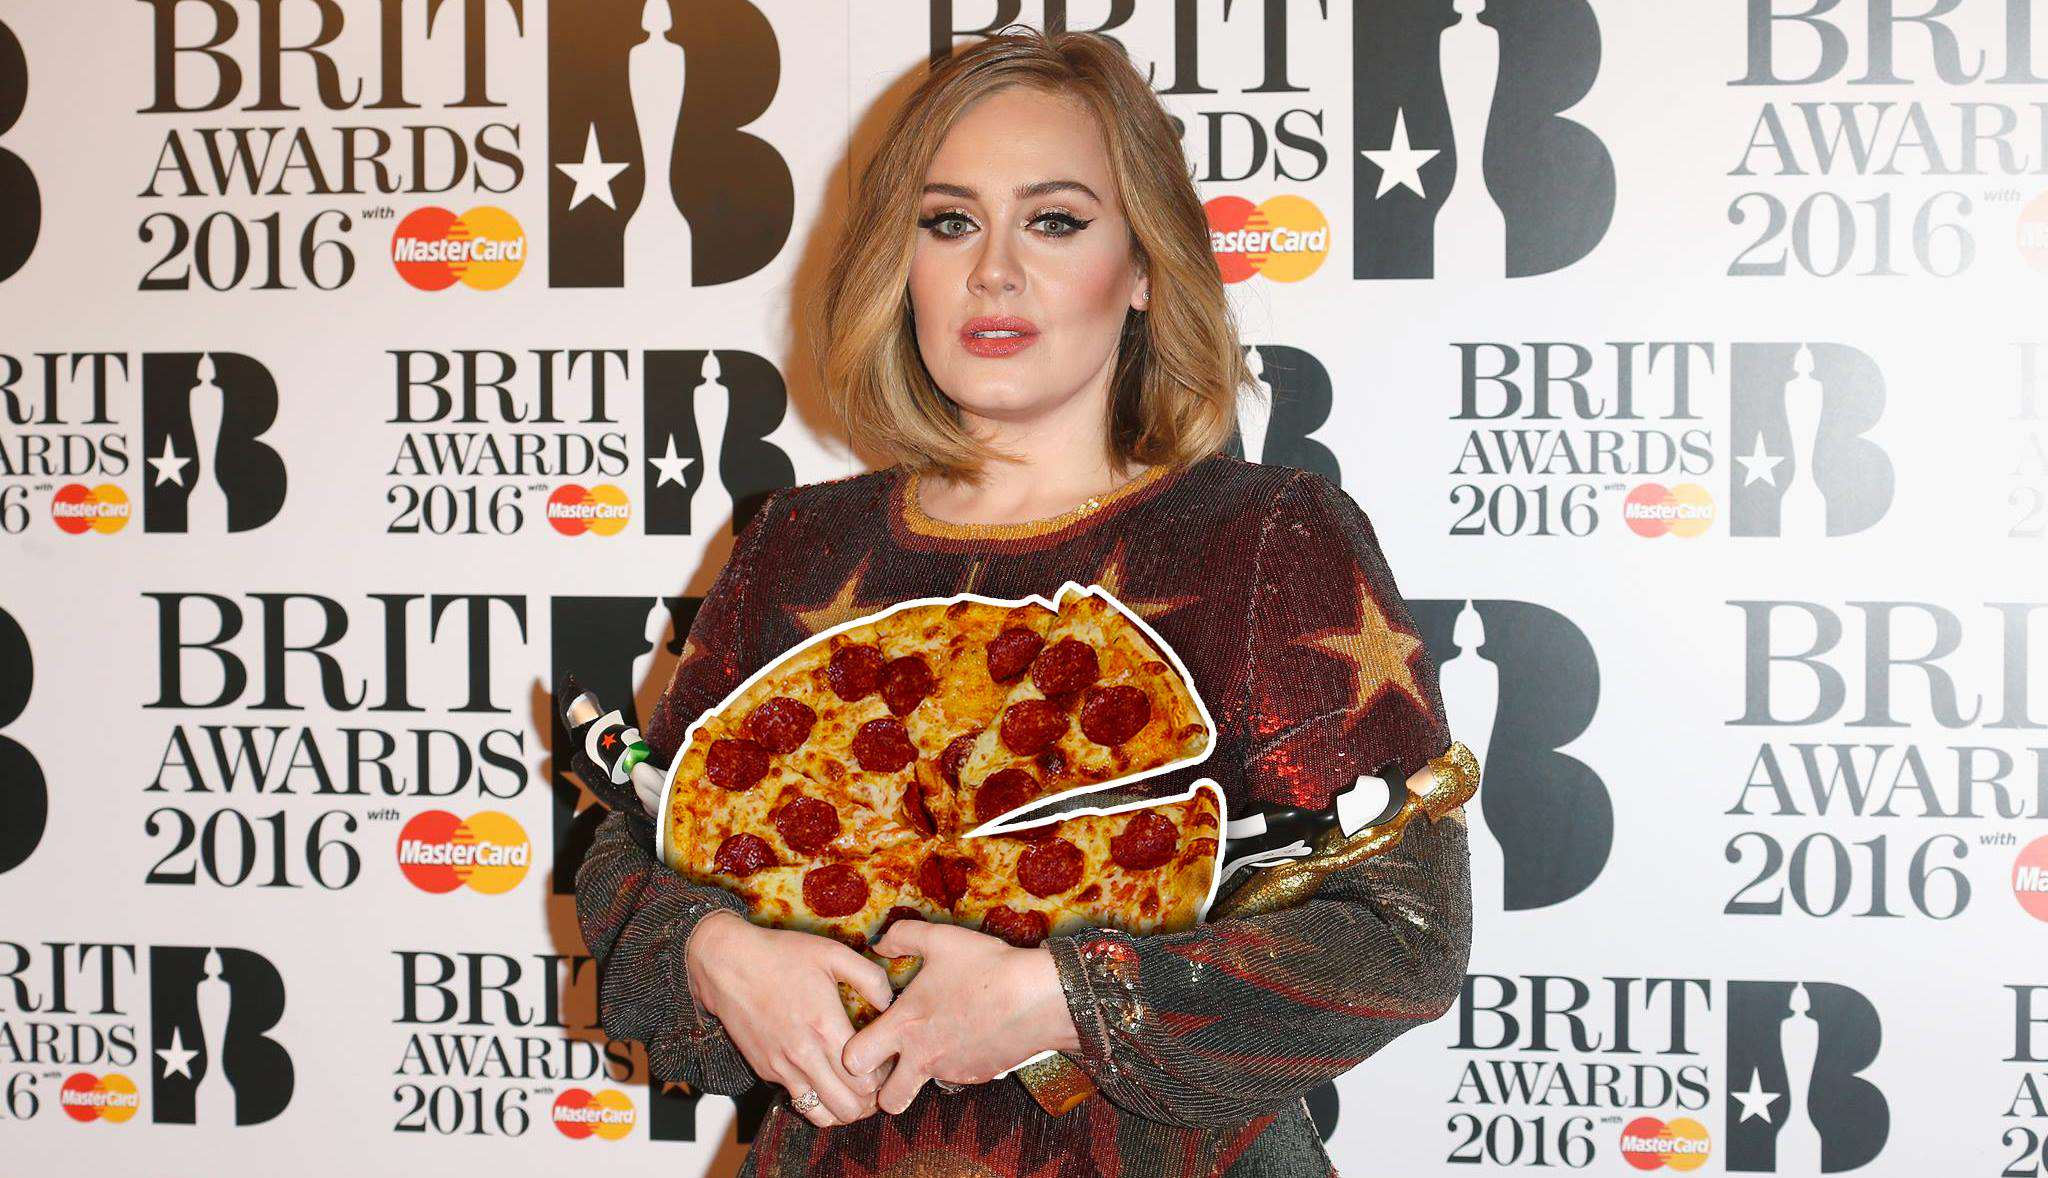 Adele Insists Hotel Staff Drive 140 Miles For Pizza, Doesnt Eat It 13639599 10157245652520604 408638861 o